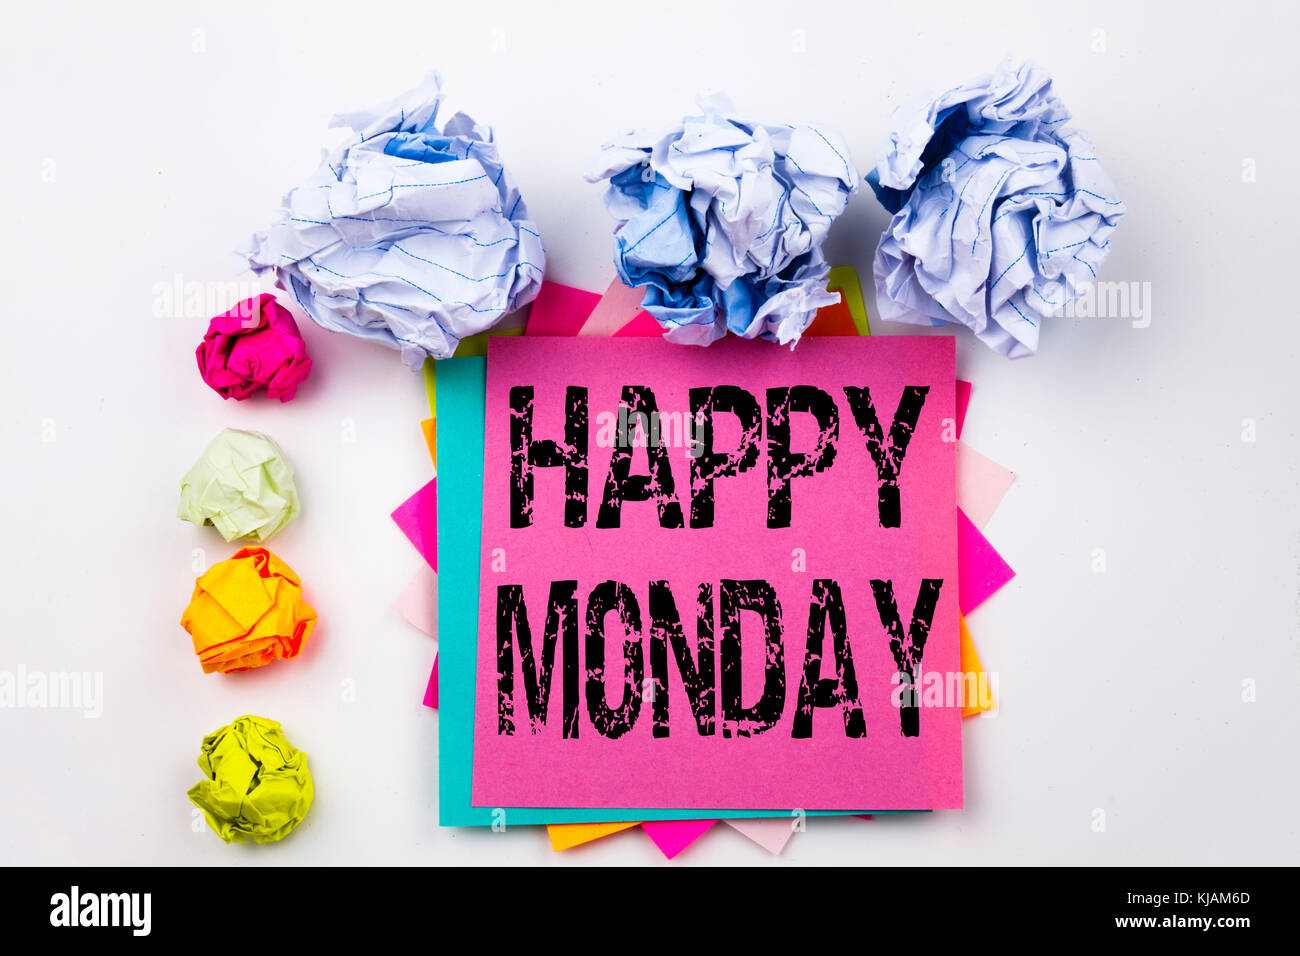 Good morning monday in vintage stock photos good morning monday in happy monday text written on tablet computer in the office with marker pen m4hsunfo